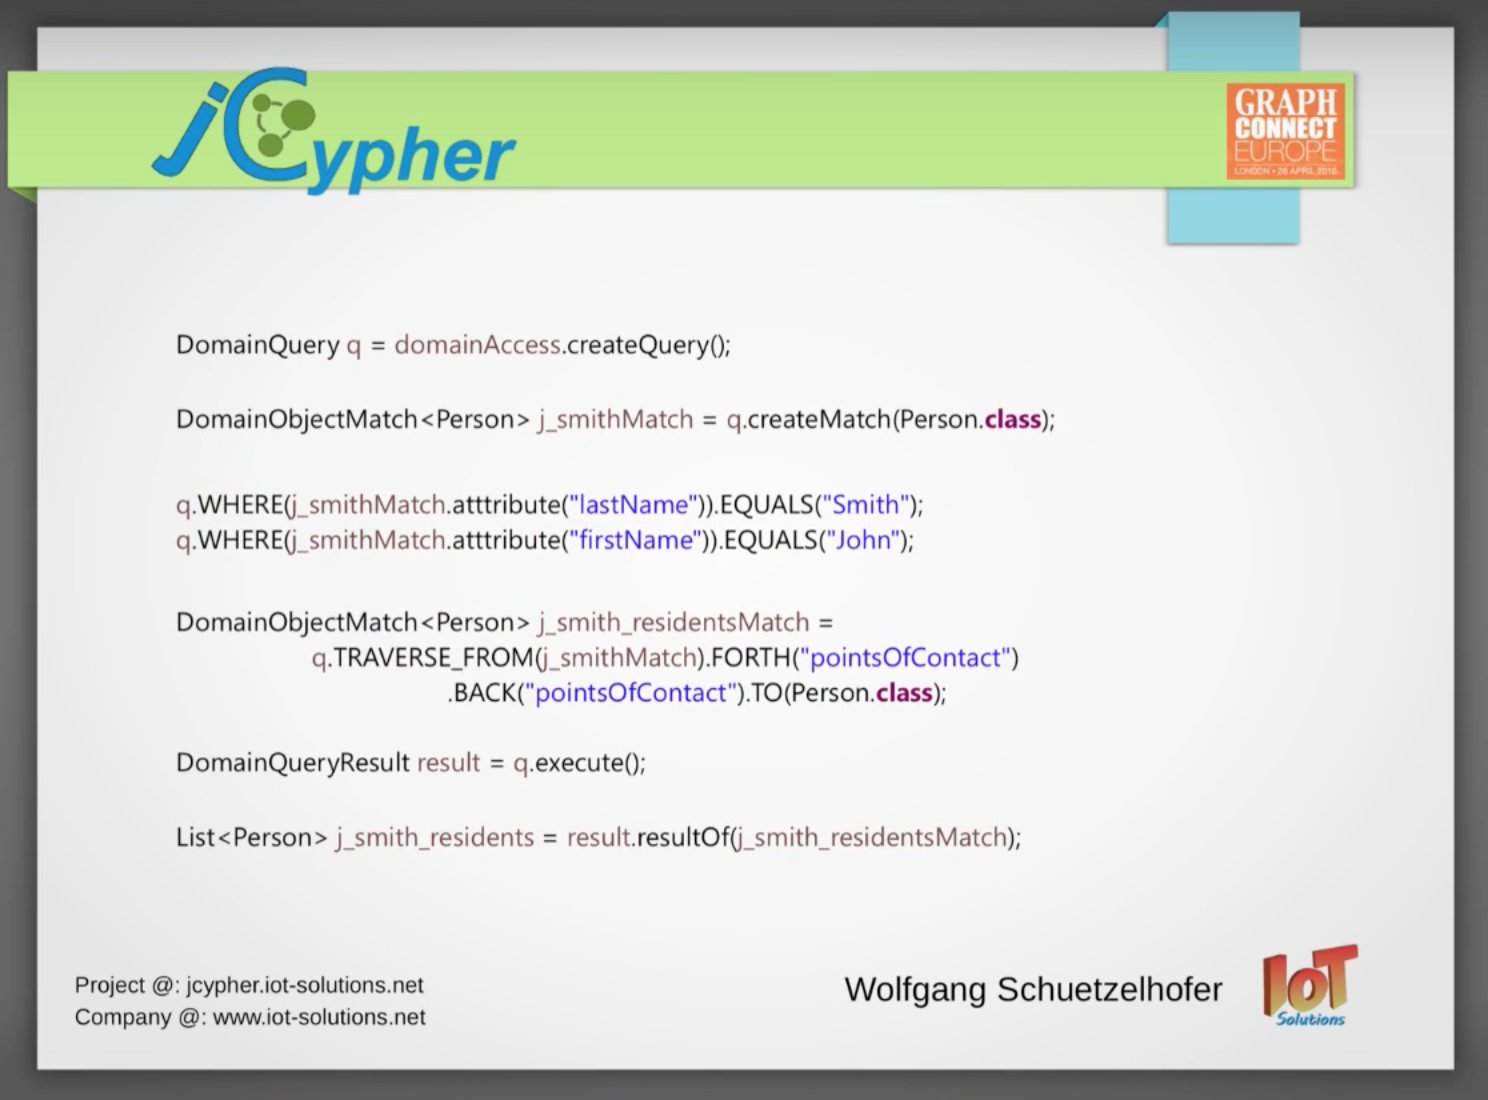 JCypher Java Domain Query